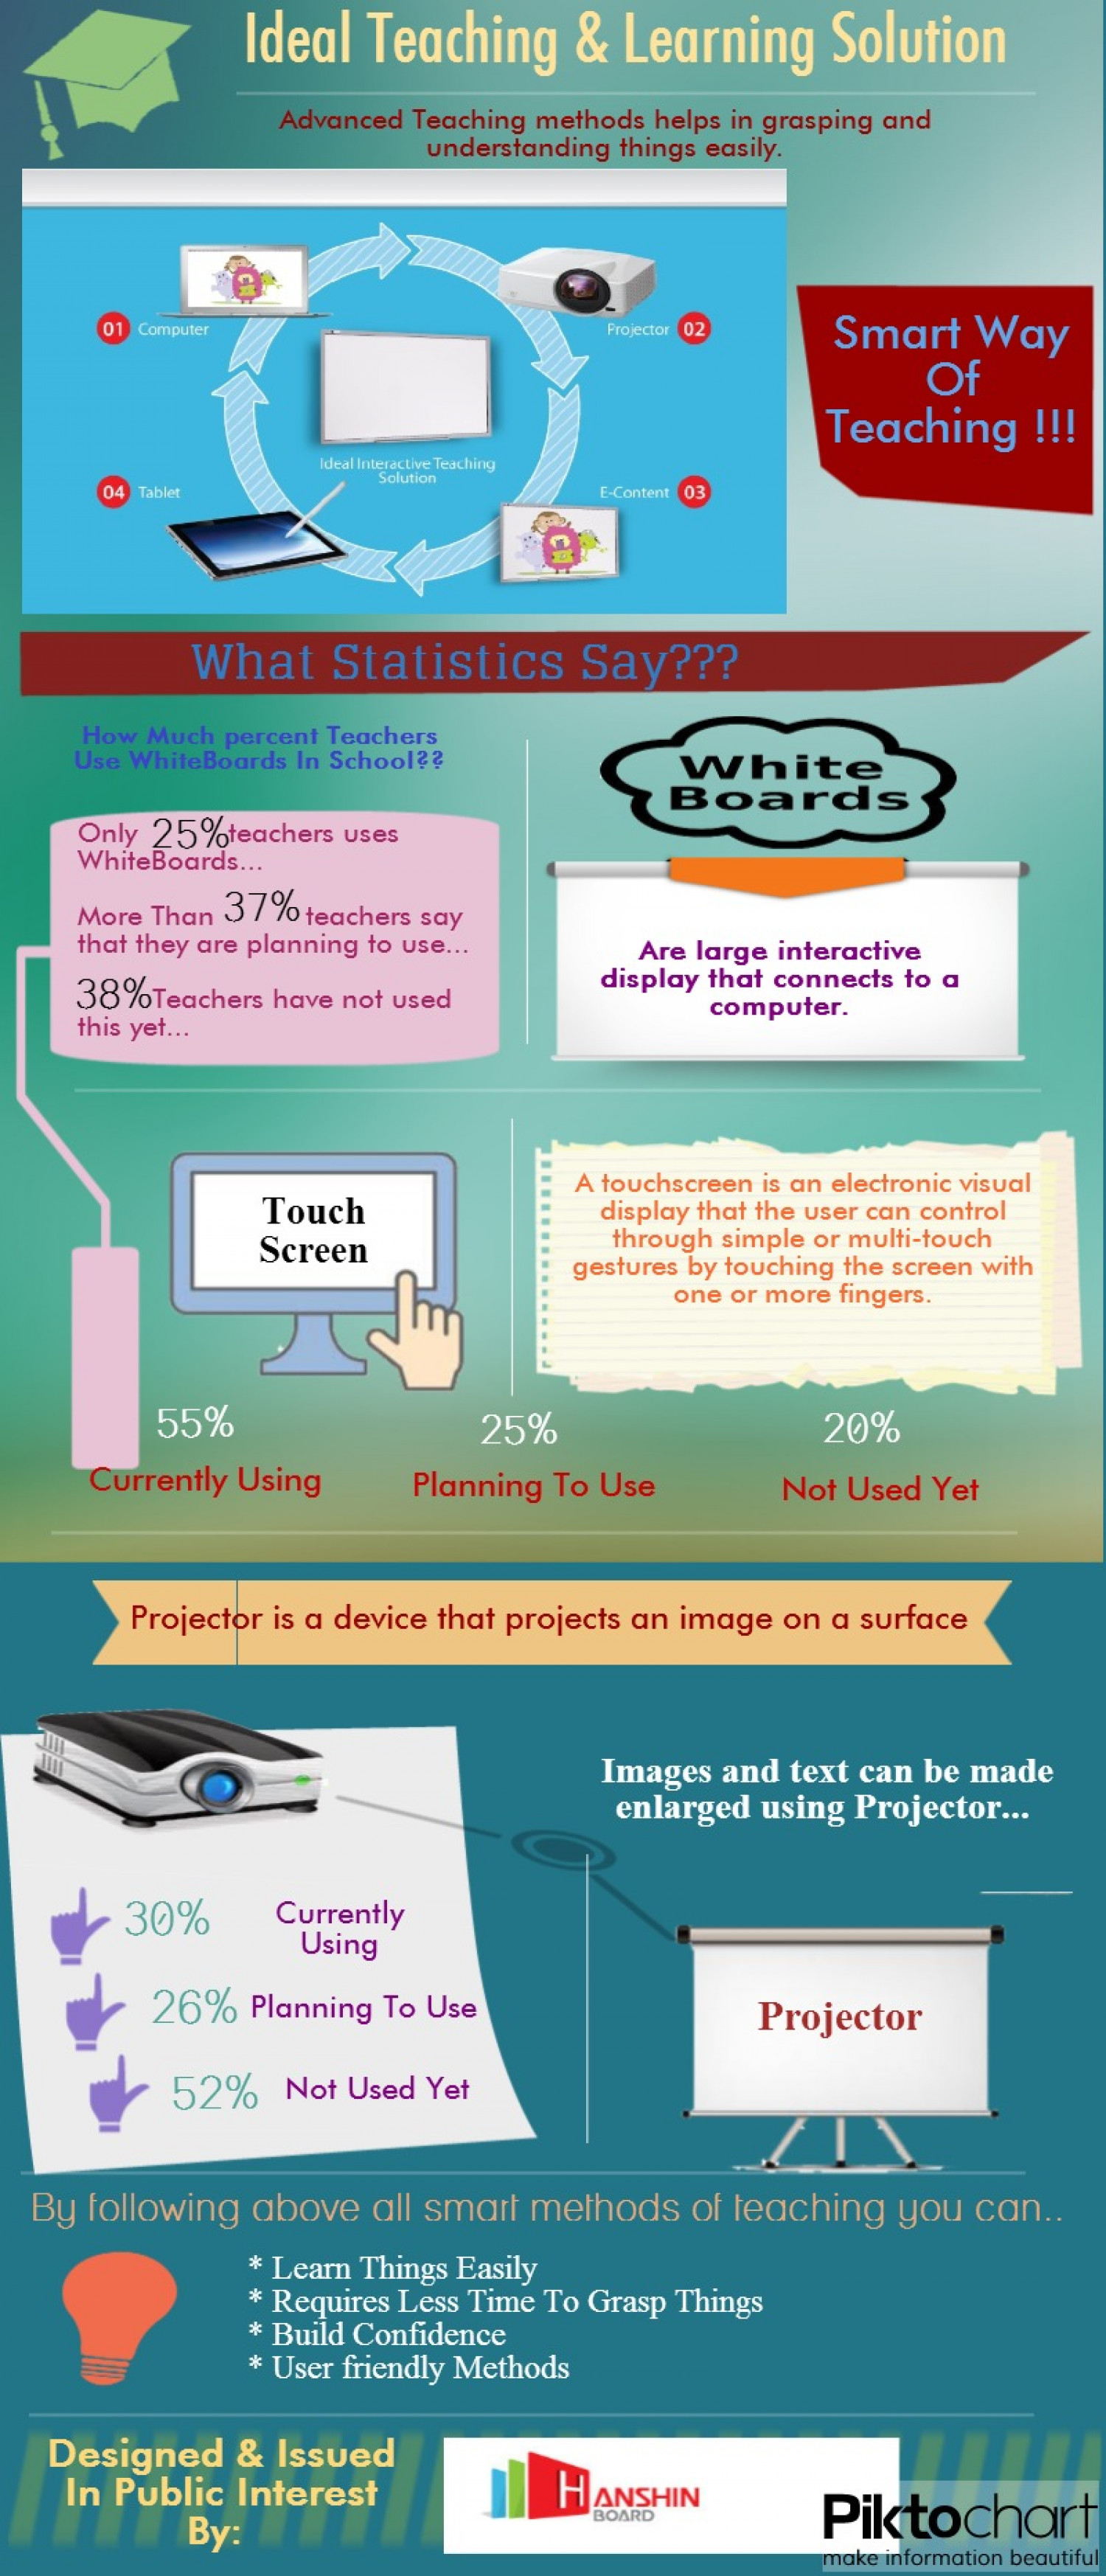 Ideal Teaching & Learning Solution Infographic